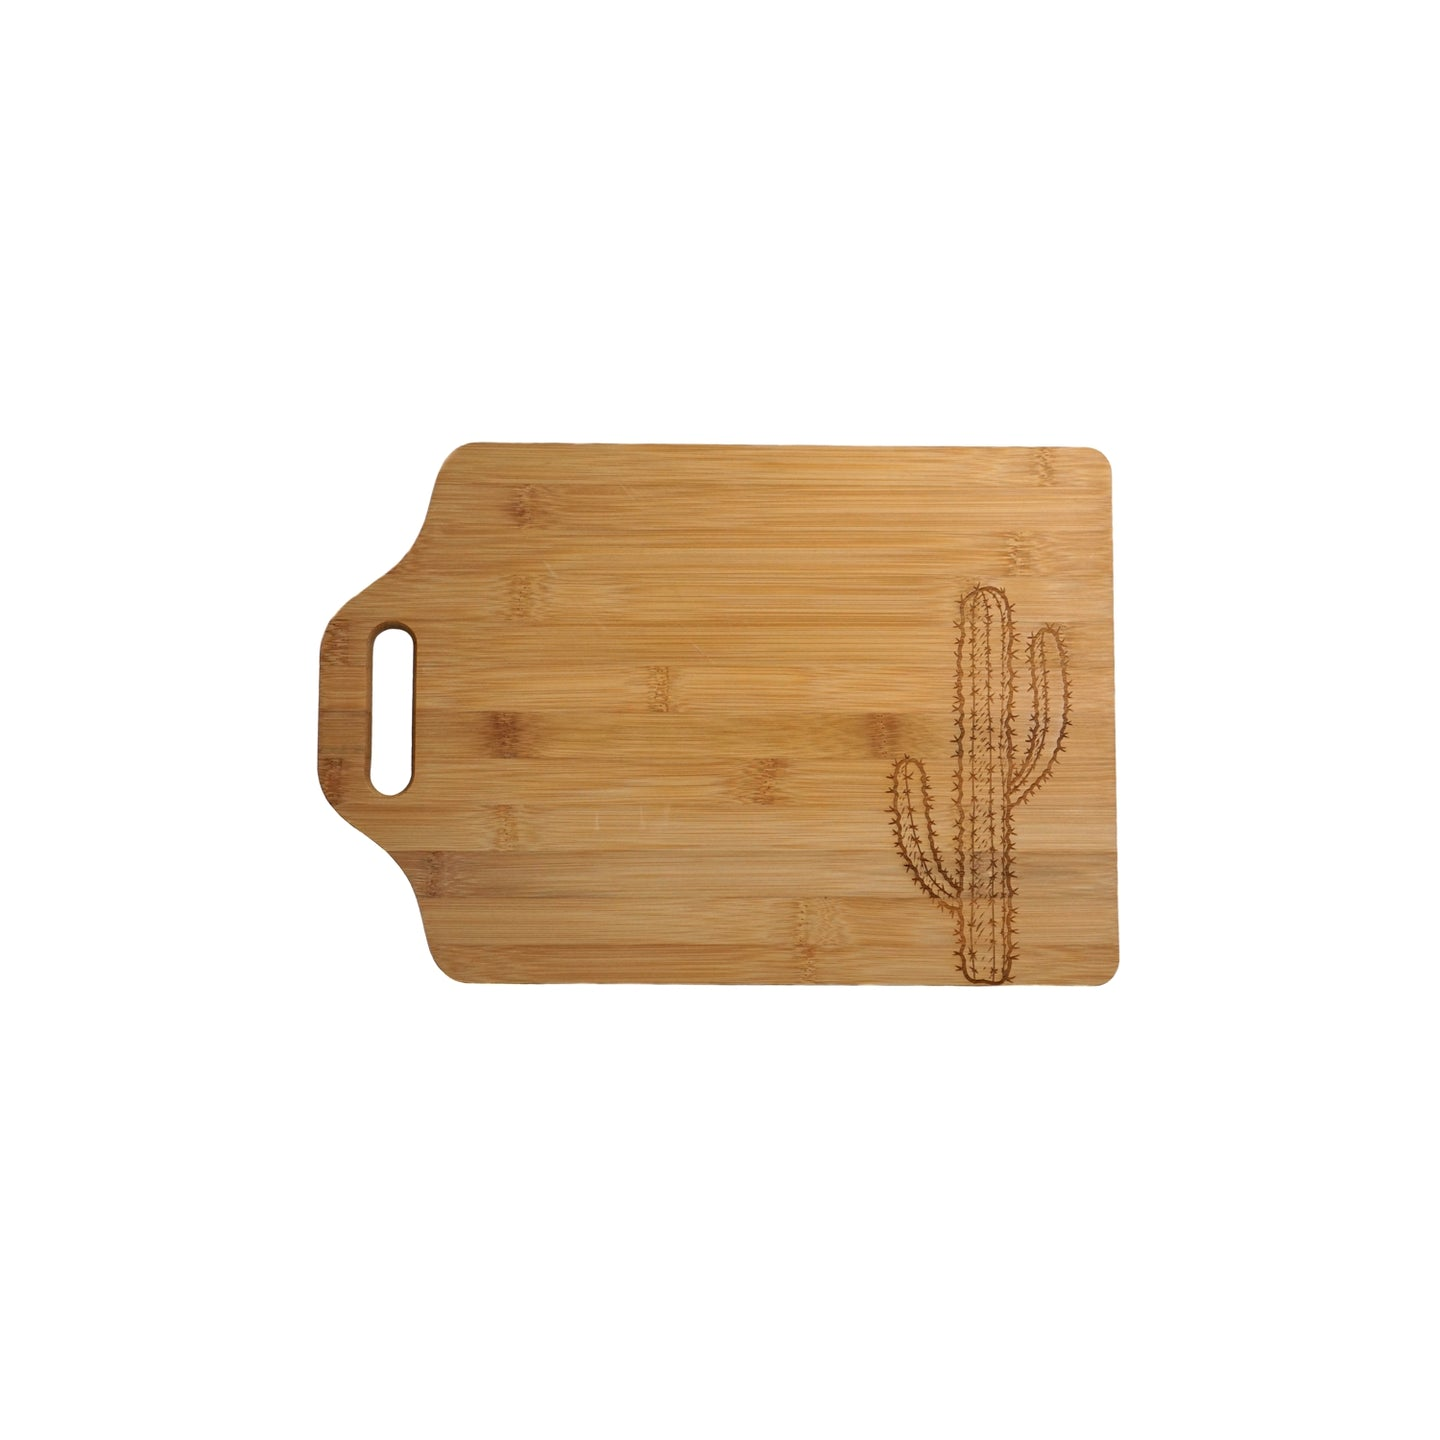 Saguaro cutting board